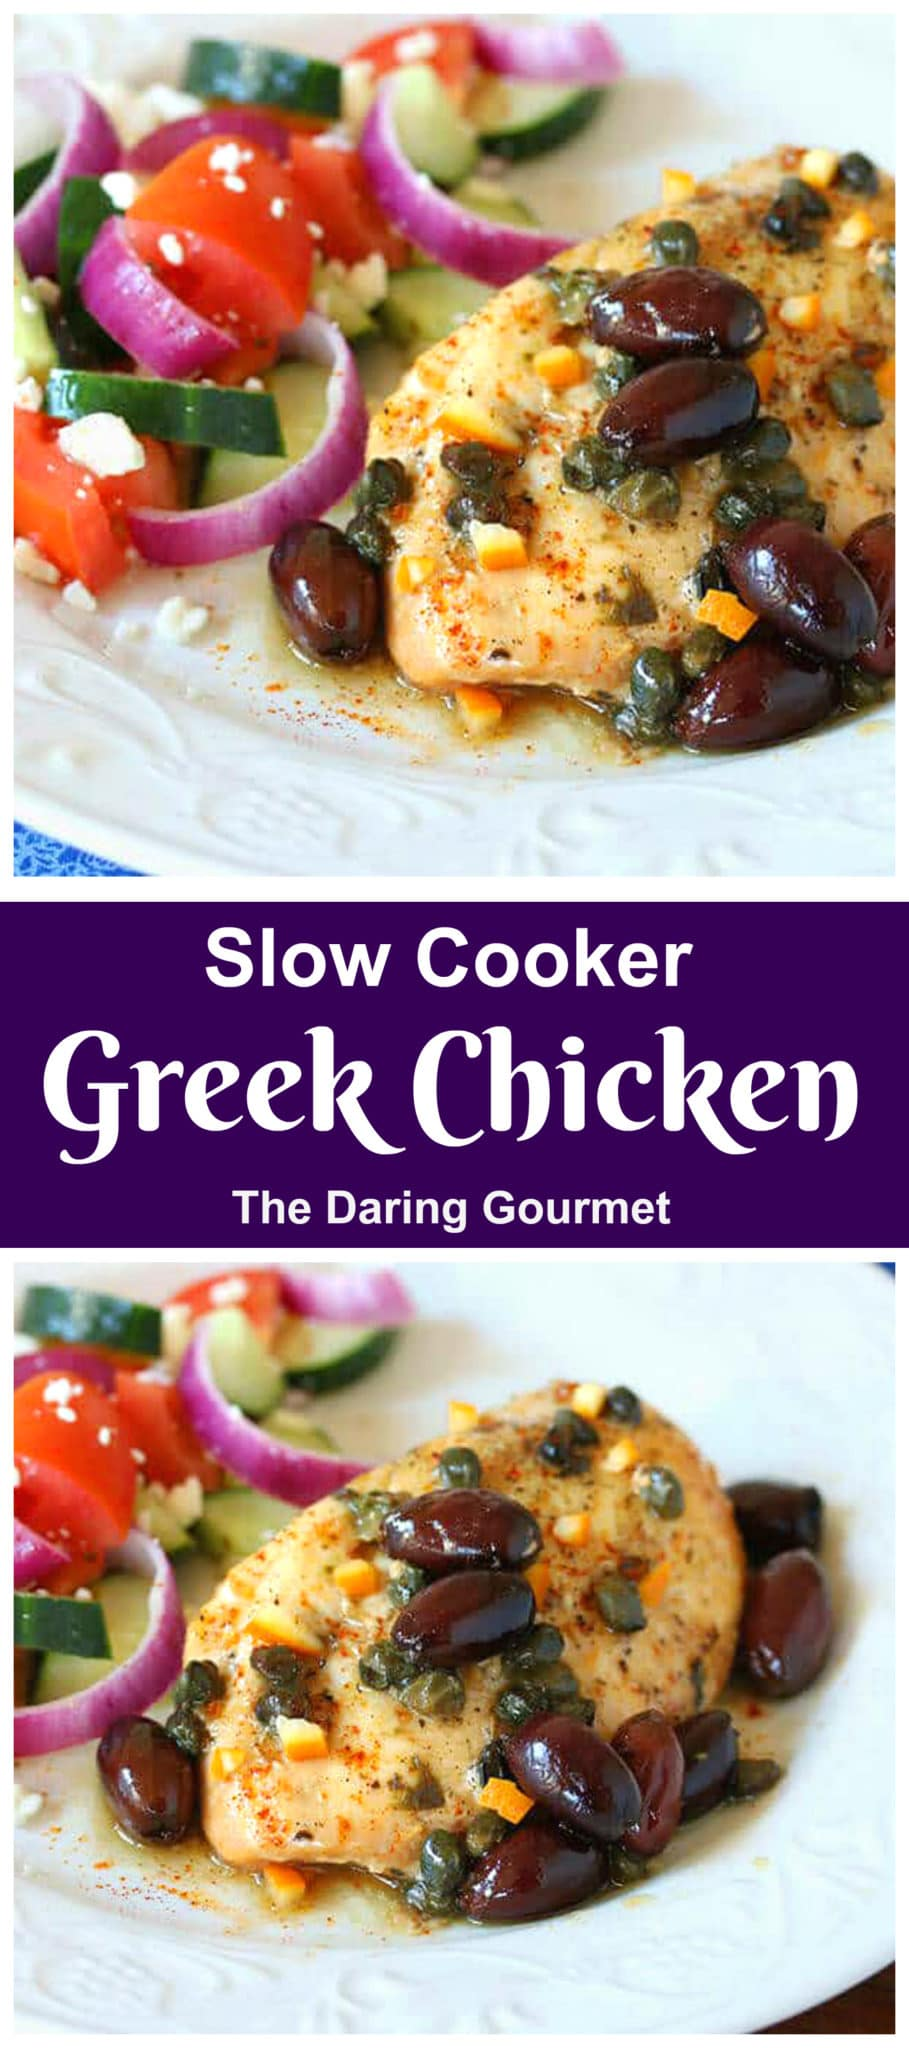 greek chicken recipe slow cooker crock pot easy